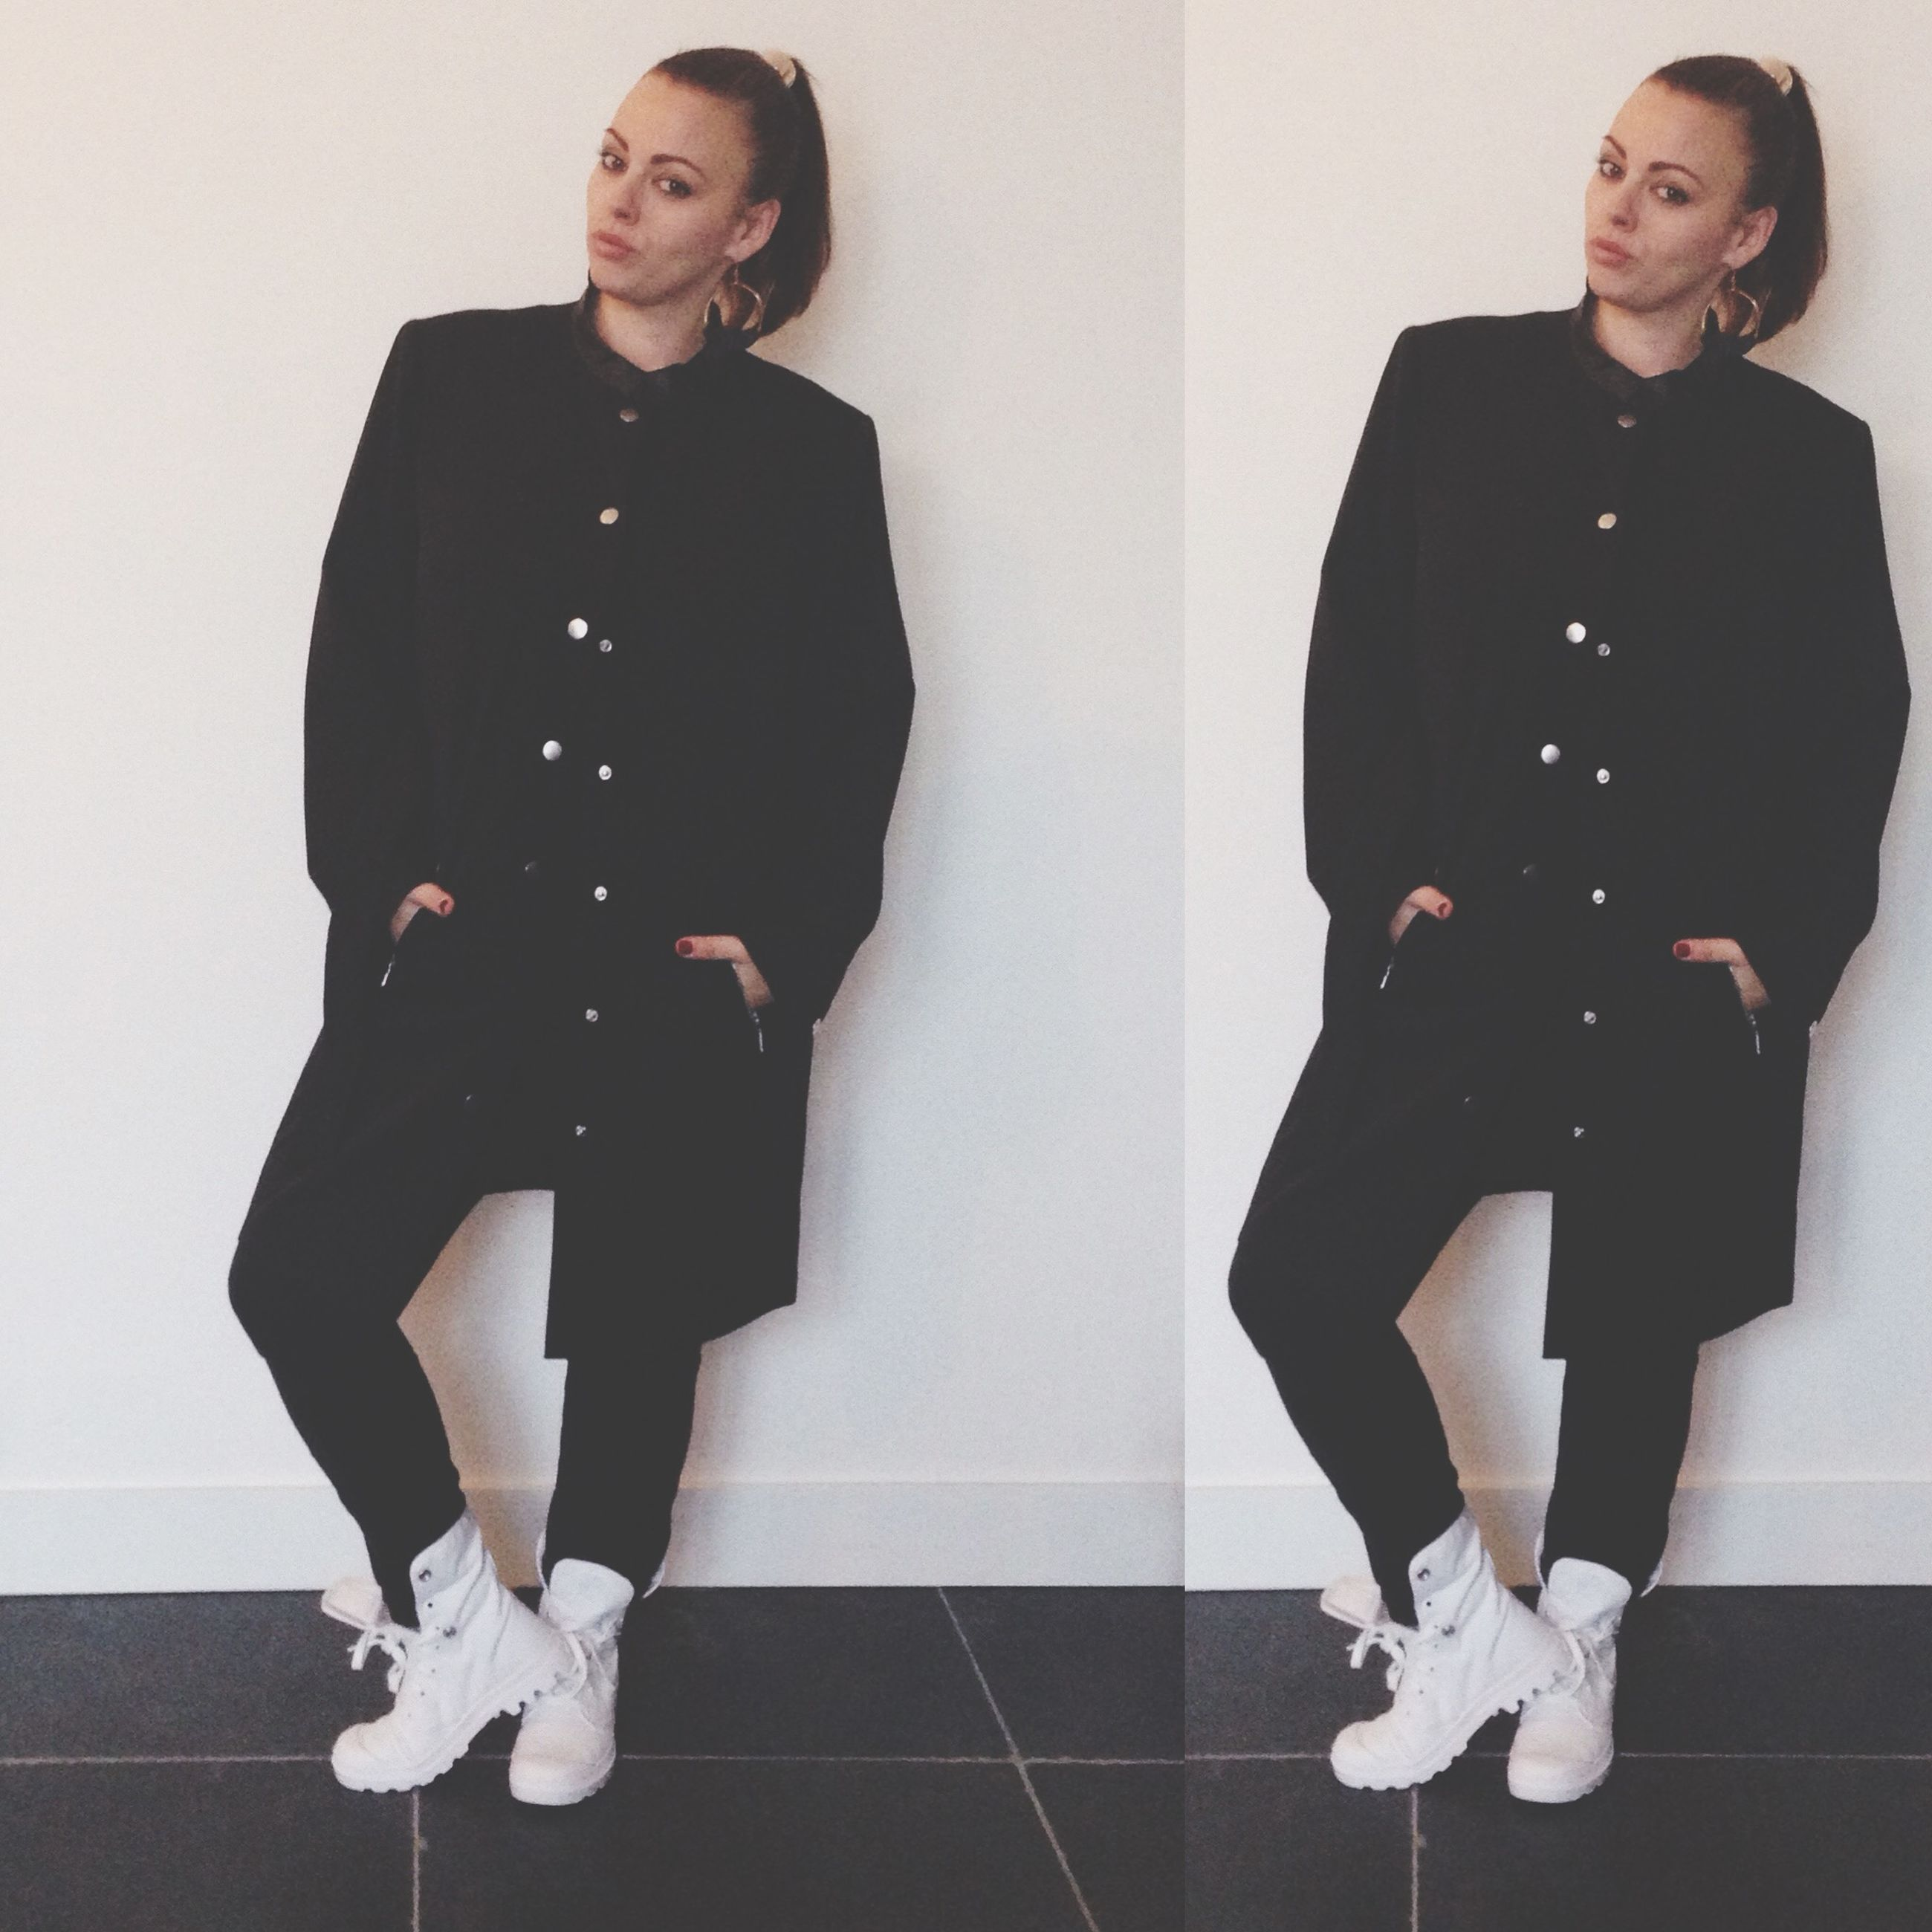 young adult, indoors, young women, person, lifestyles, front view, casual clothing, looking at camera, standing, portrait, leisure activity, full length, three quarter length, wall - building feature, fashion, smiling, happiness